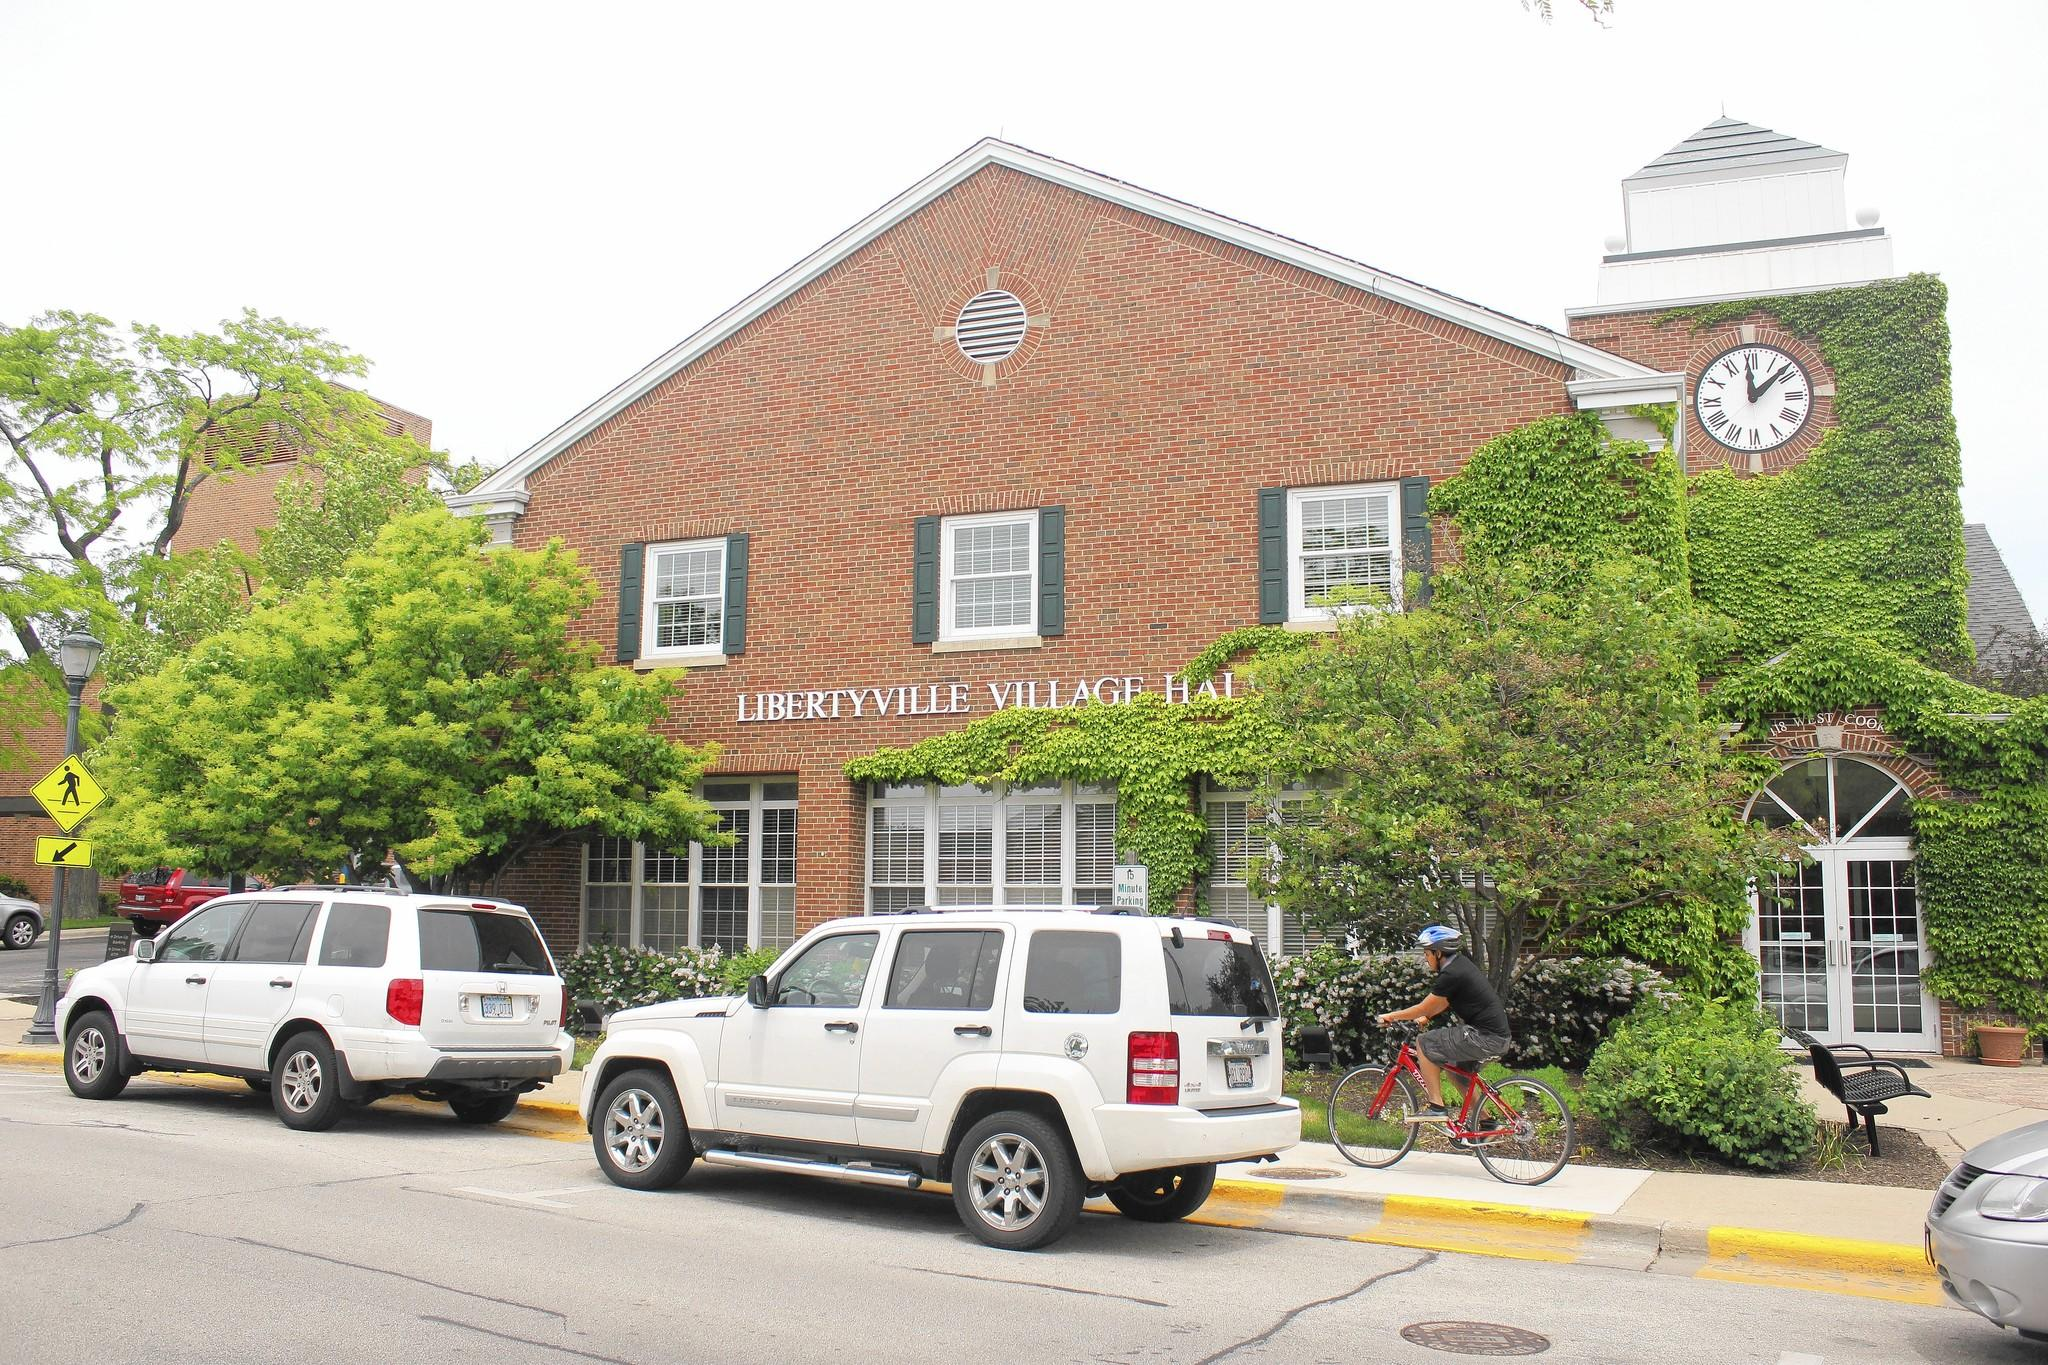 Libertyville trustees shot down the recommendation of Mayor Terry Weppler to impose a moratorium on downtown business licenses while the town solves a parking issue.